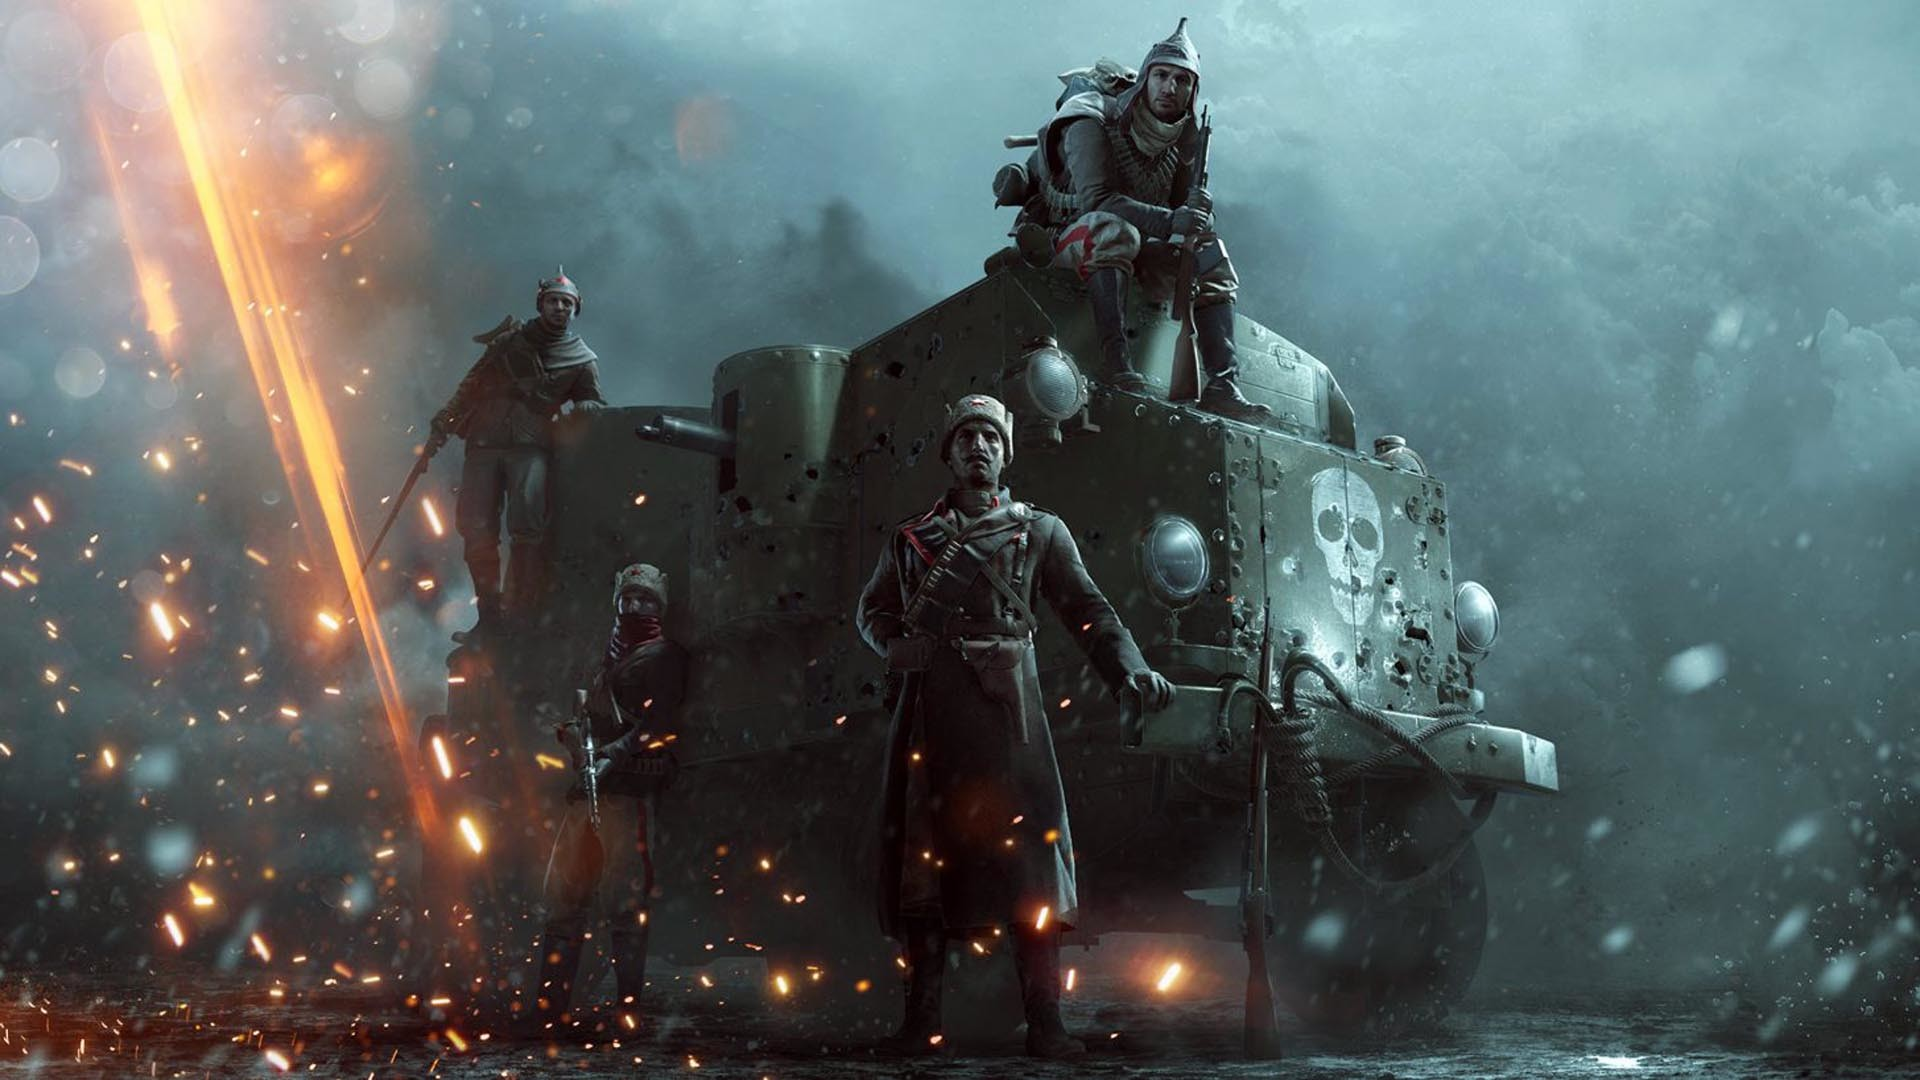 Battlefield 1 Wallpapers 1440p Bf1 In The Name Of The Tsar